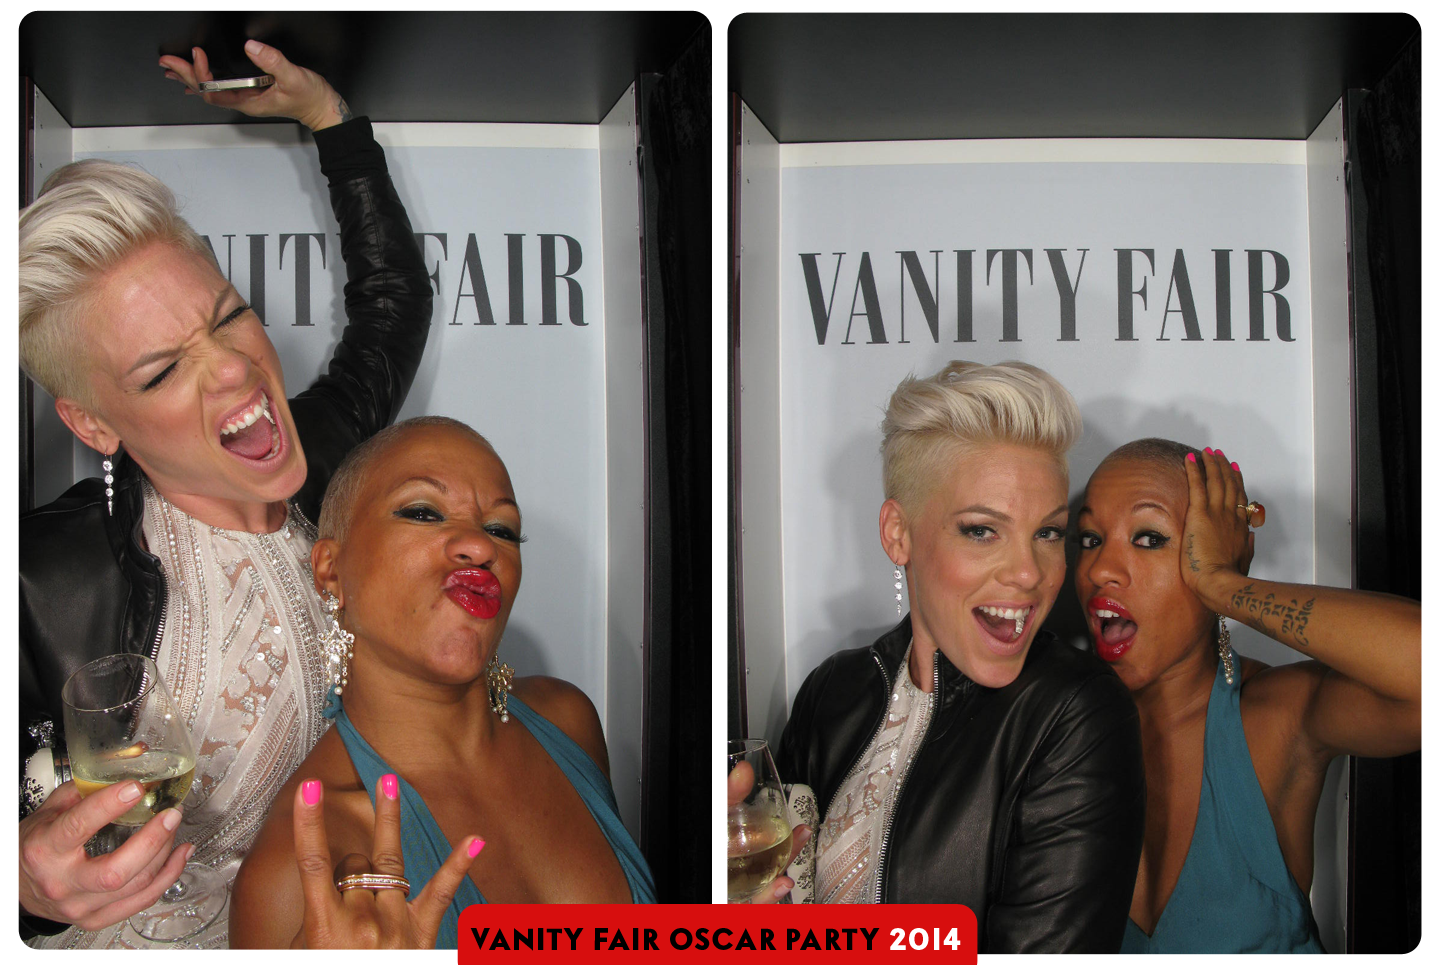 53154852fd335452150e7831_ss02-pink-vanity-fair-photo-booth.png